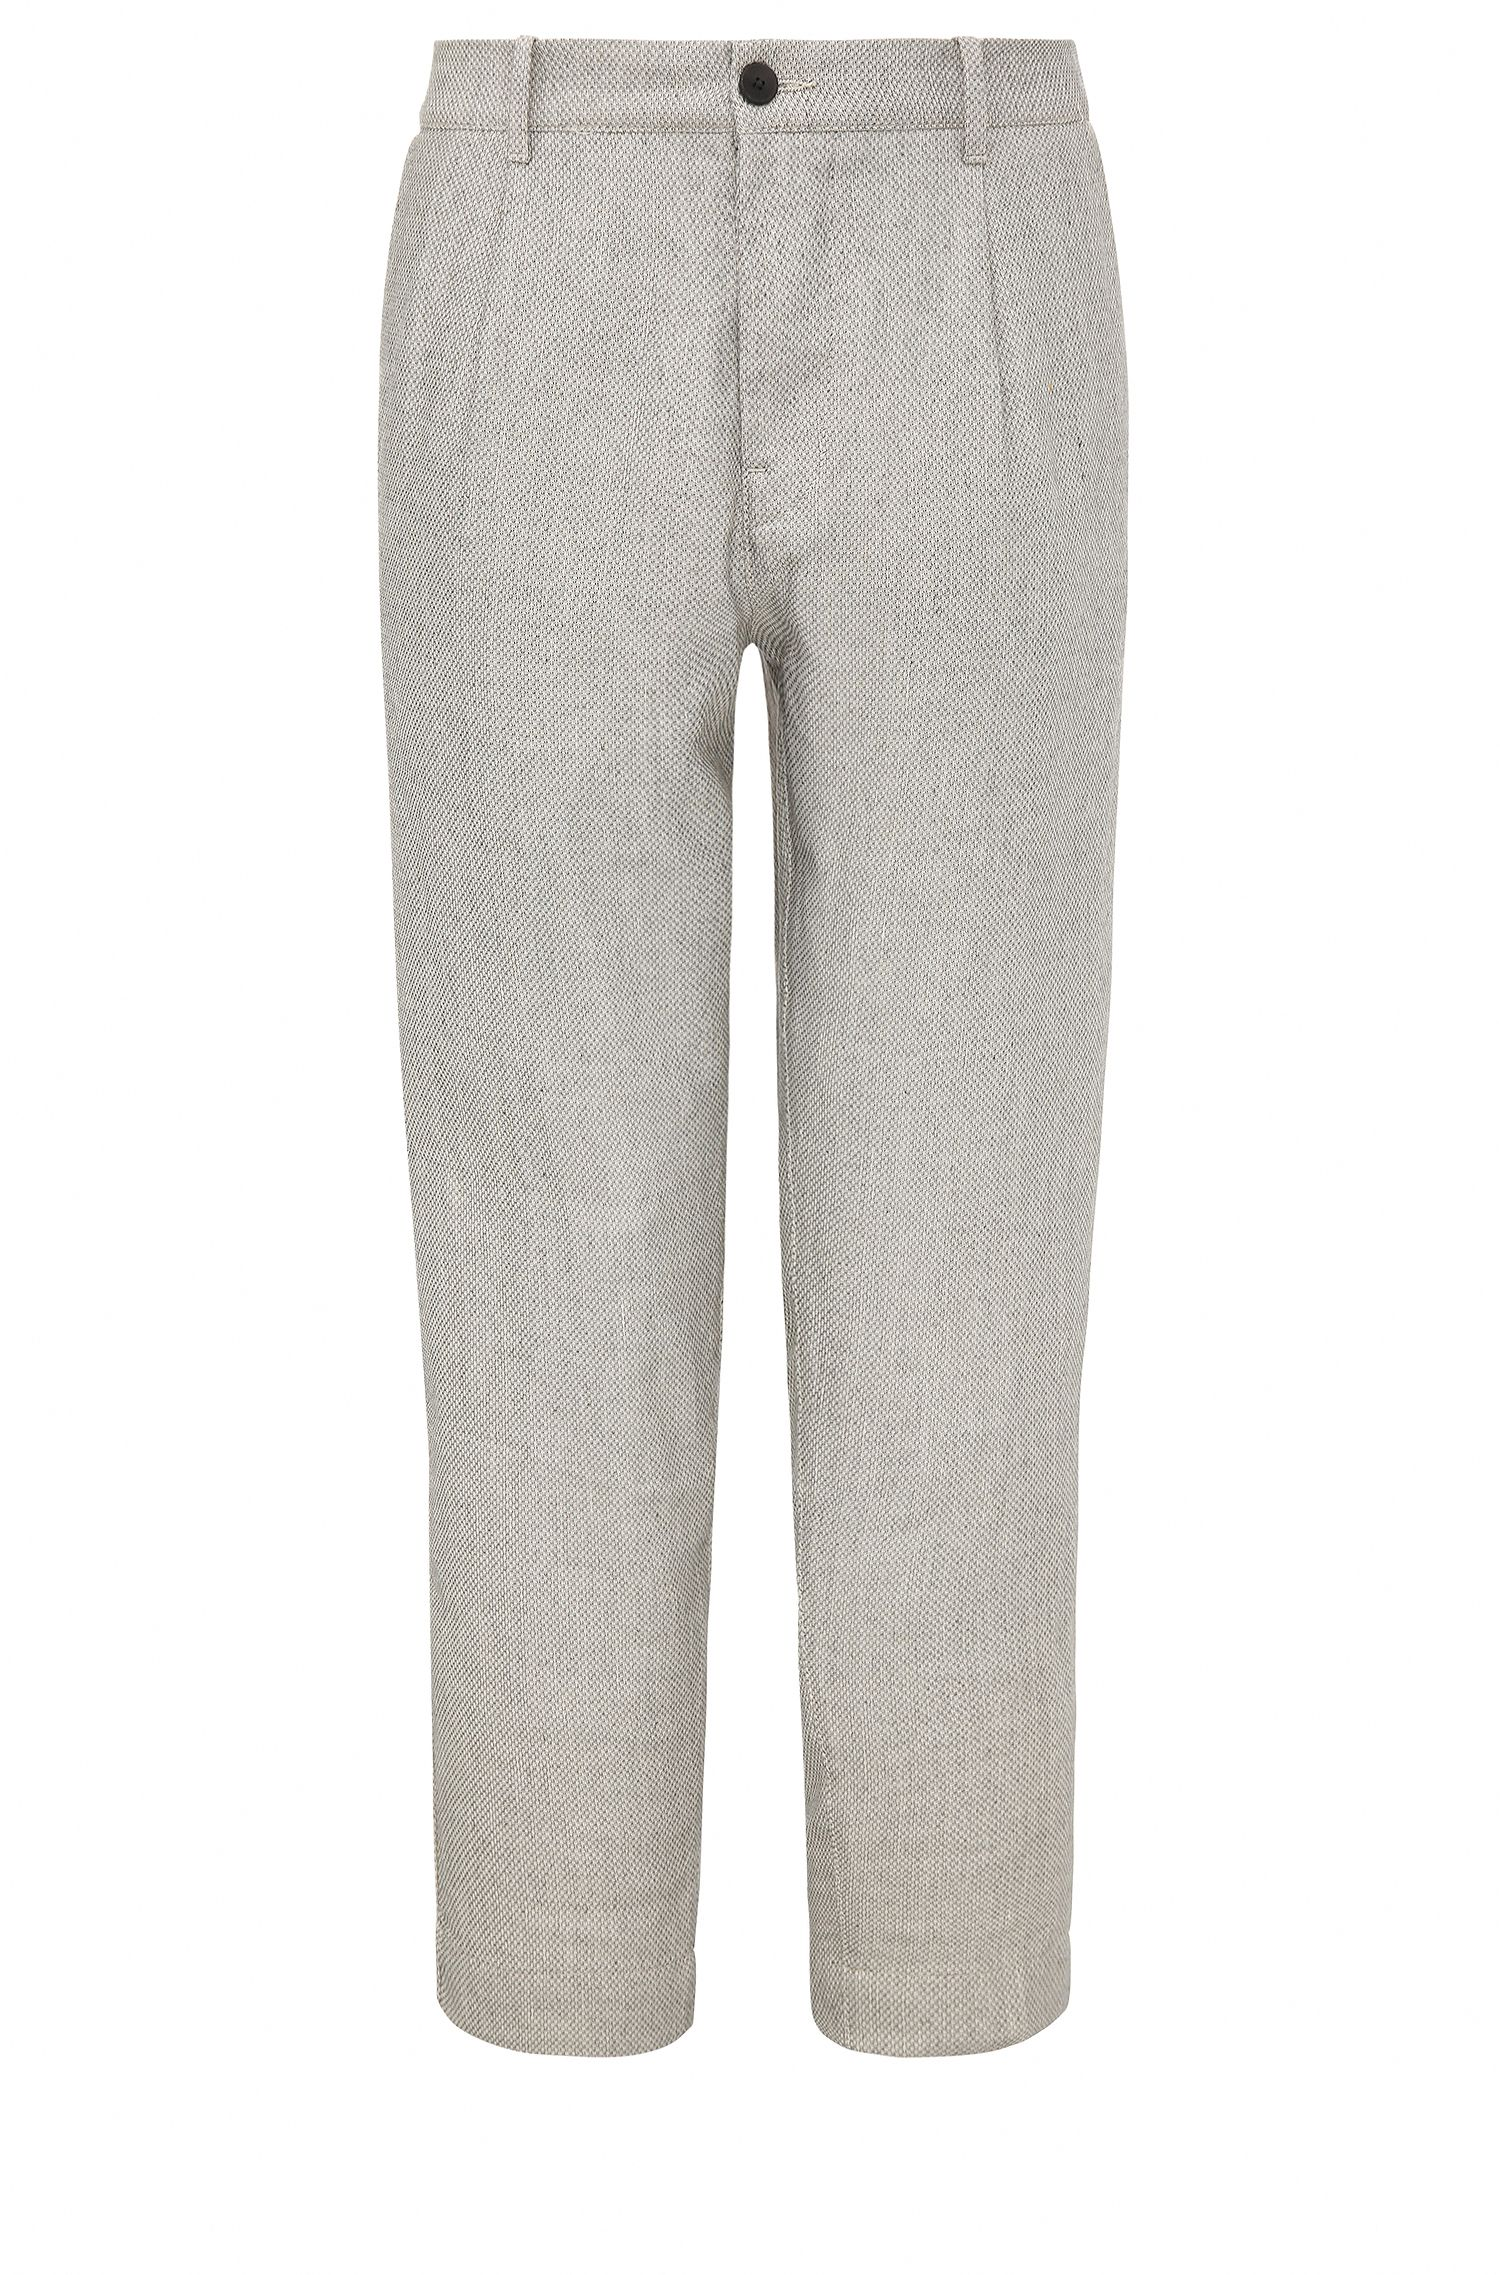 Relaxed-fit cropped trousers in material blend with linen: 'Suno-W'